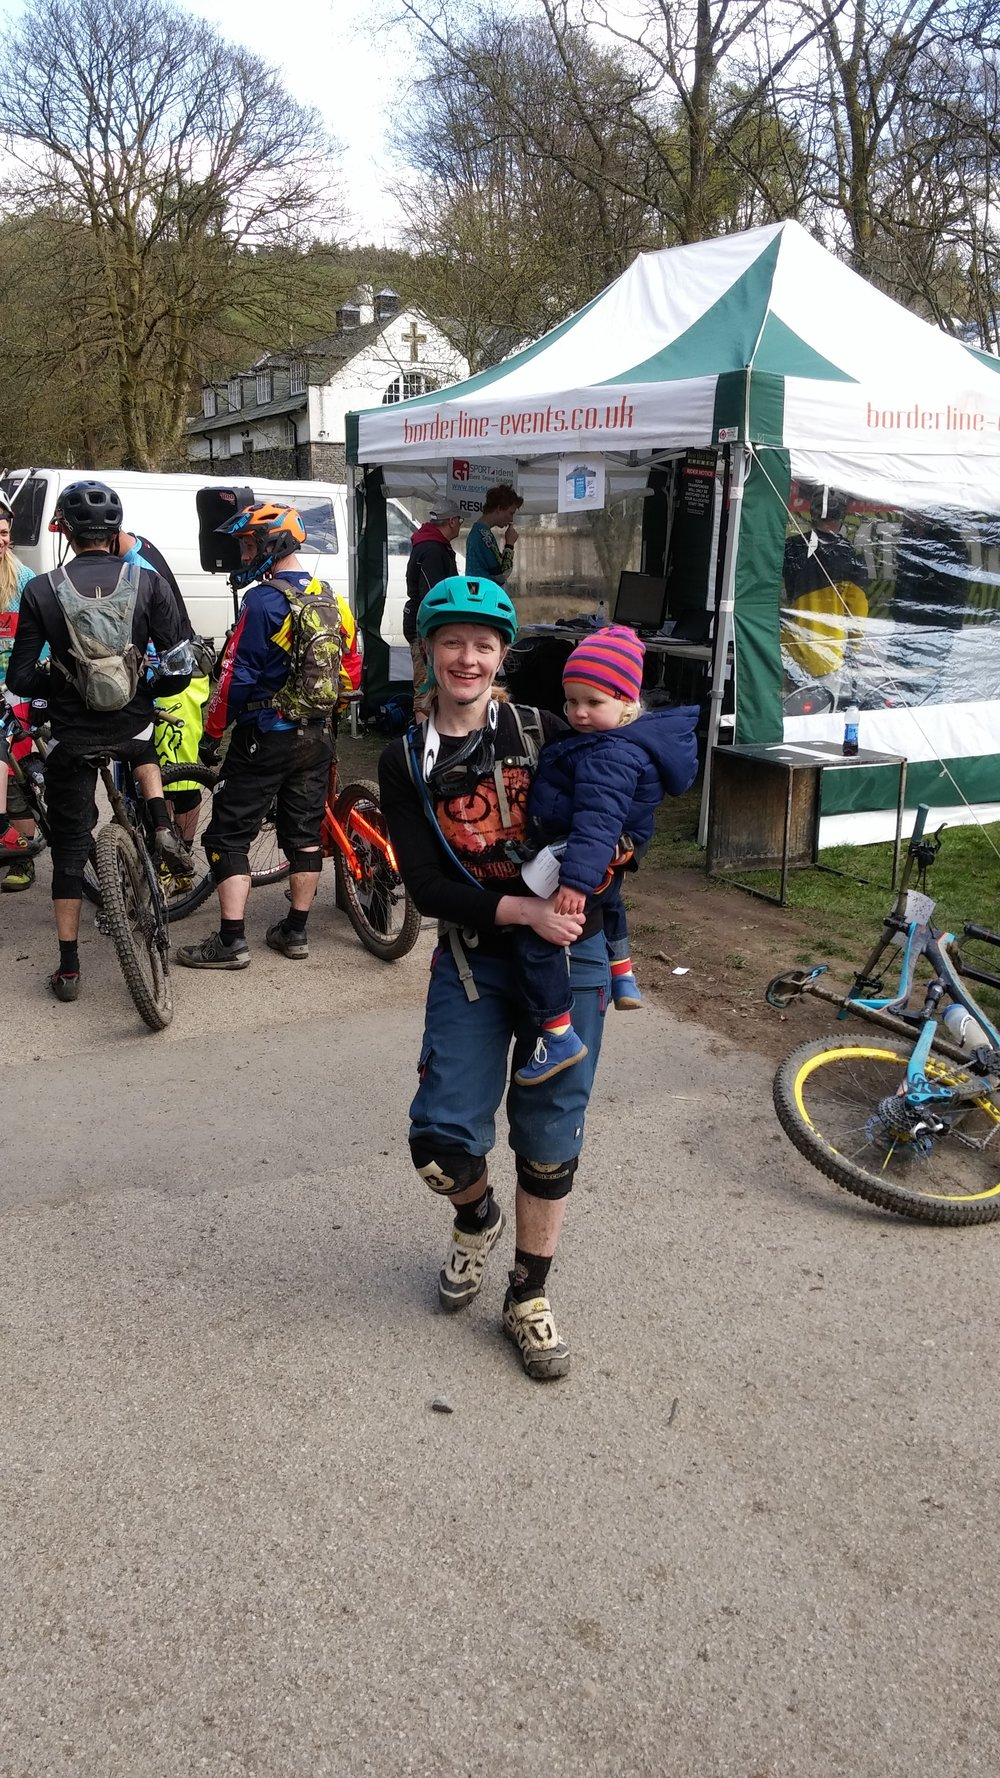 Kat Compton at the PMBA round at Grizedale 2015 - I was greeted by my little girl at the finish. It's hard work trying to race with young children, so doesn't happen often but I love it when I can race!!